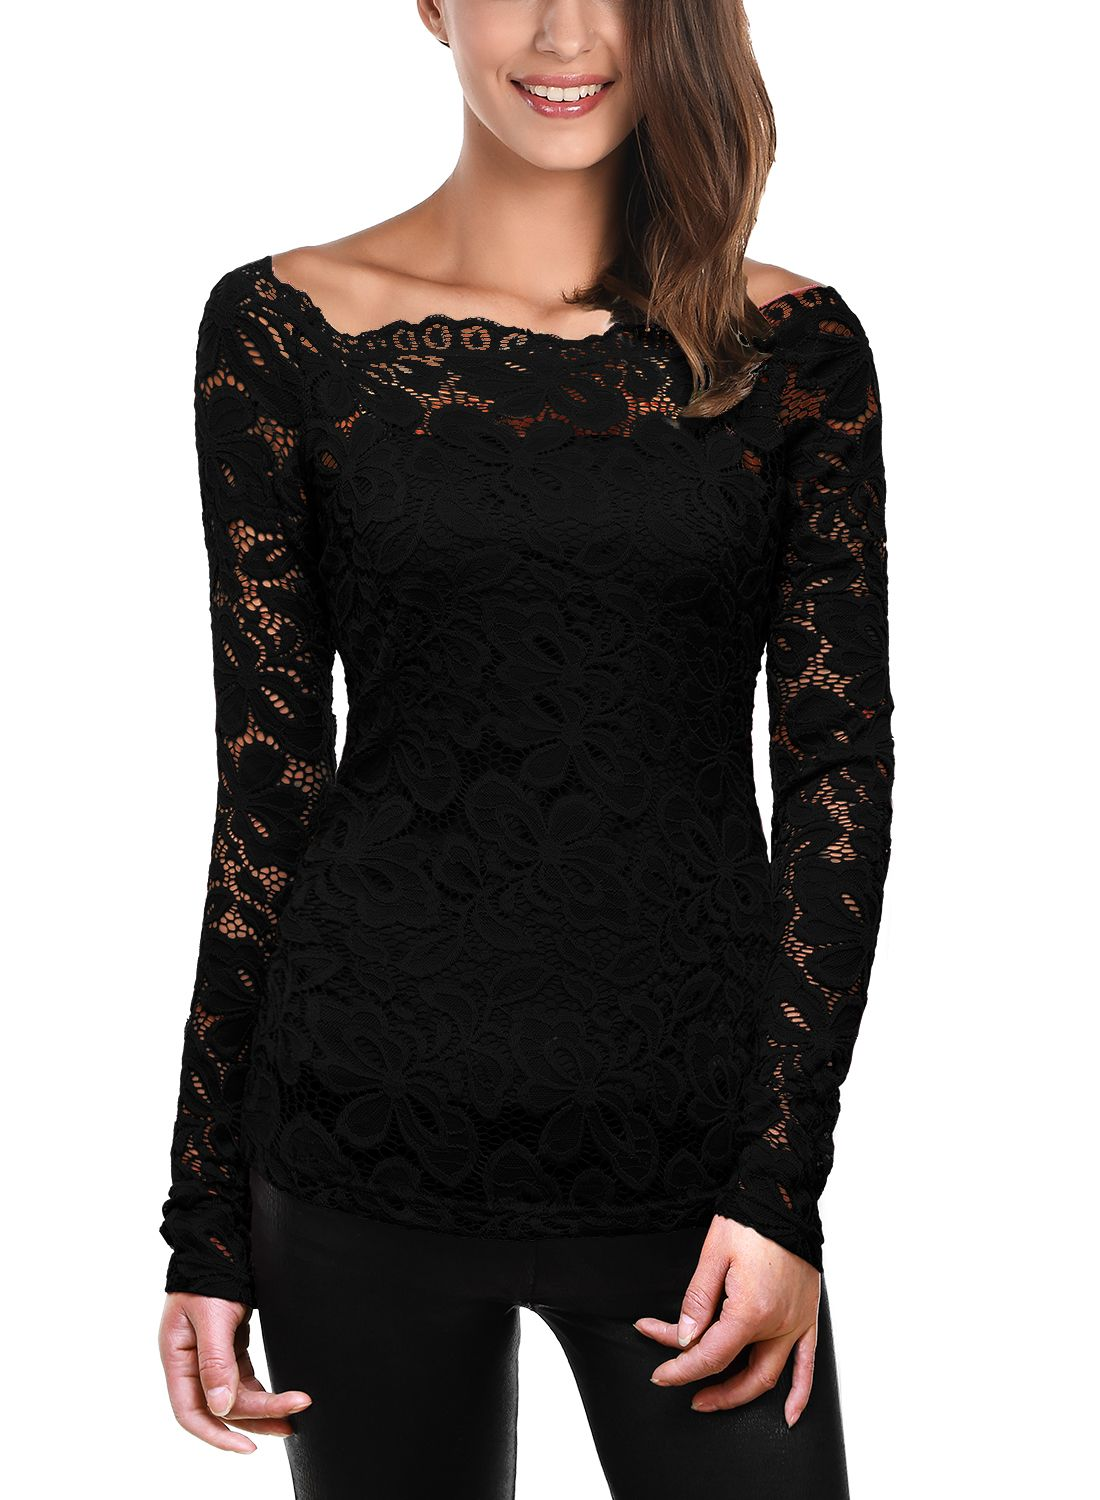 Pandapang Womens Round Neck Flare Sleeve Plus Size Beaded Loose Tops T-Shirt